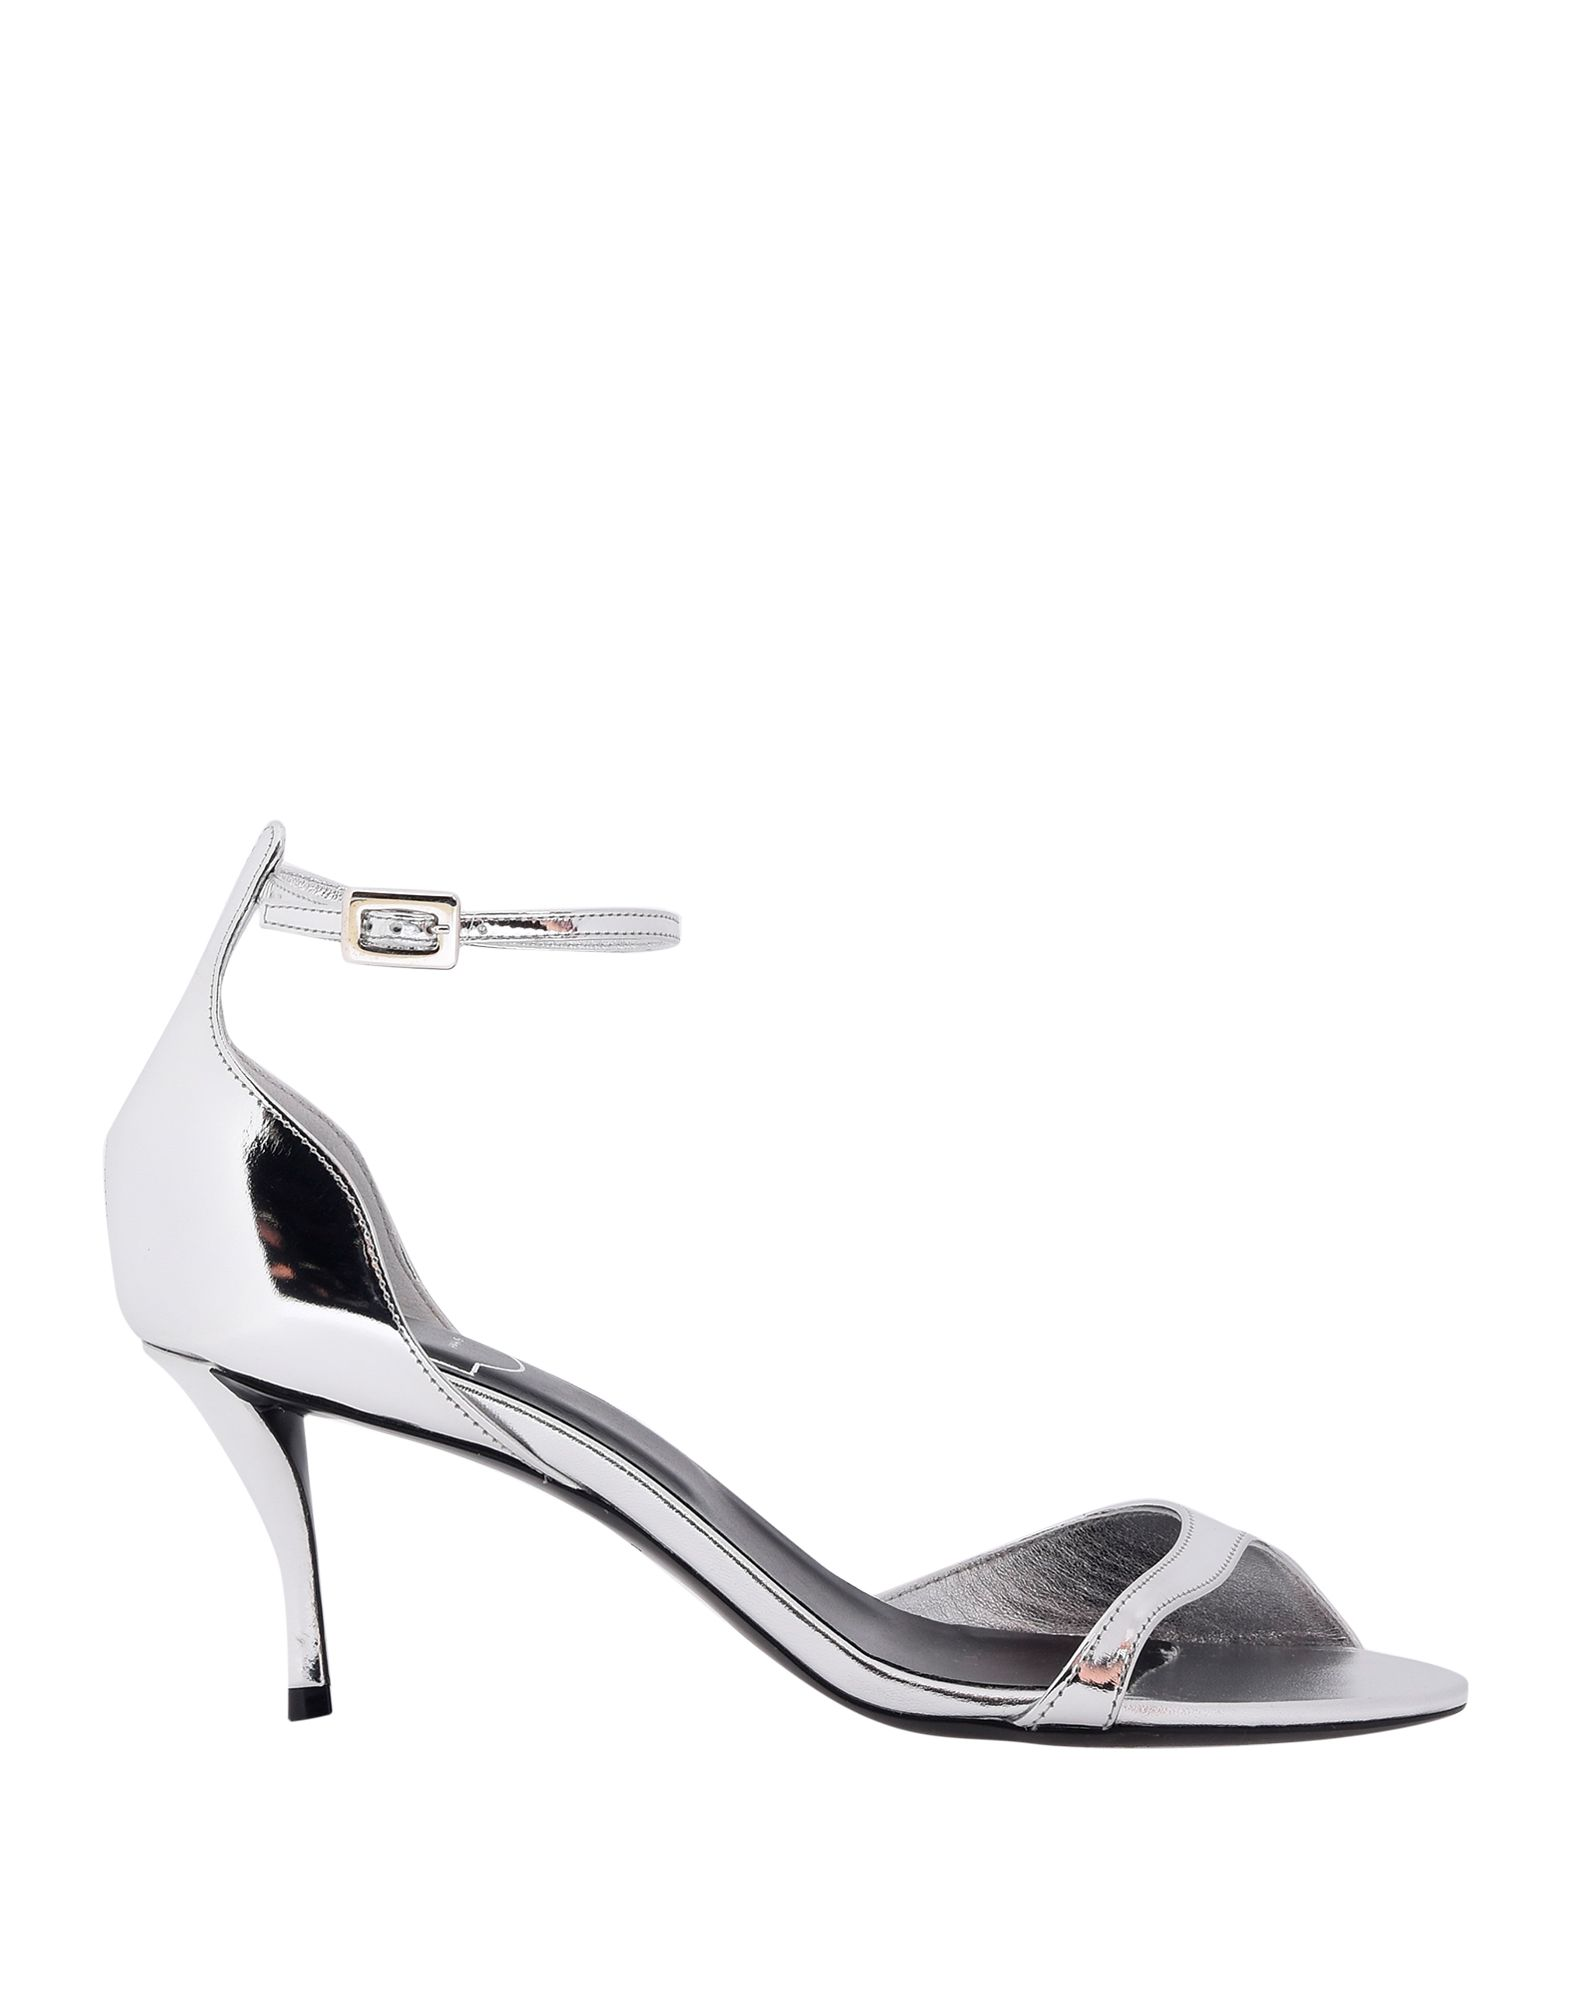 ROGER VIVIER Sandals. laminated effect, no appliqués, solid color, buckling ankle strap closure, round toeline, spool heel, covered heel, leather lining, rubber sole, contains non-textile parts of animal origin. Soft Leather